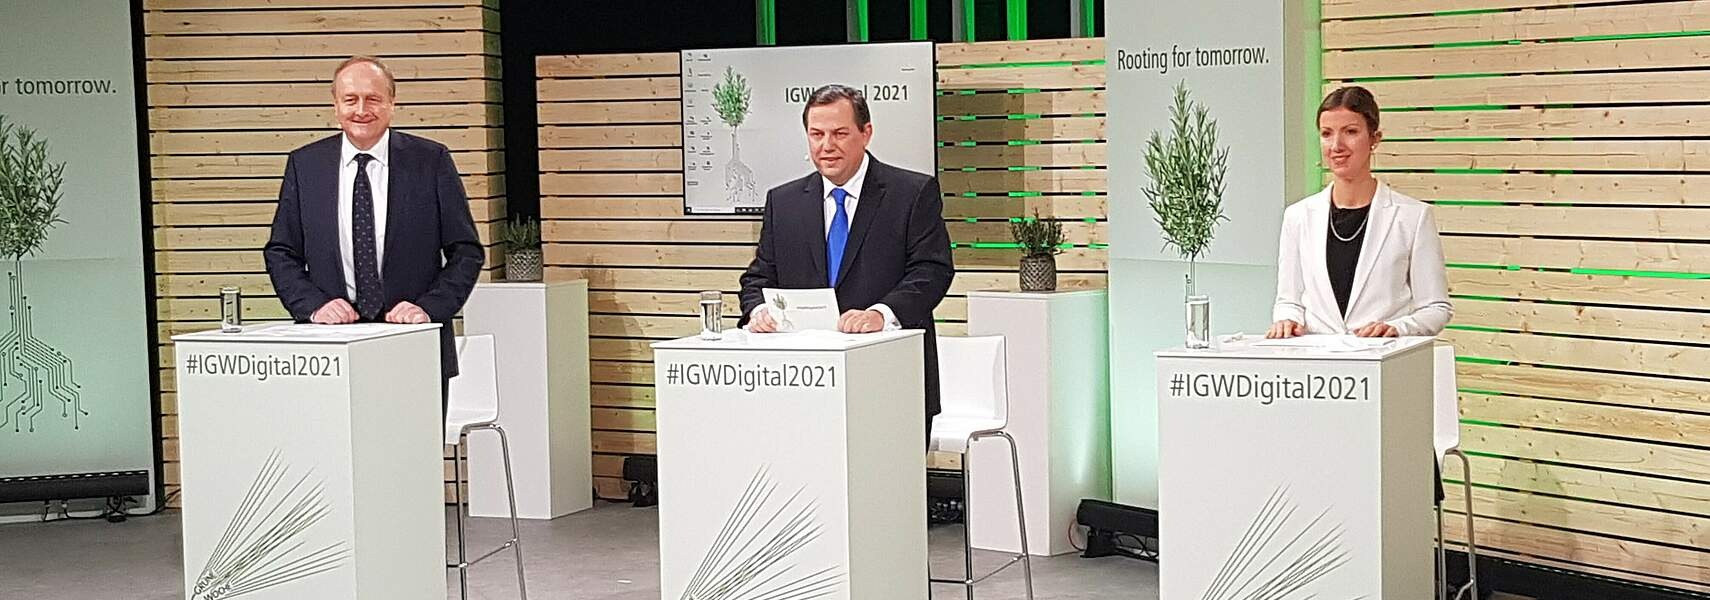 Internationale Grüne Woche Digital